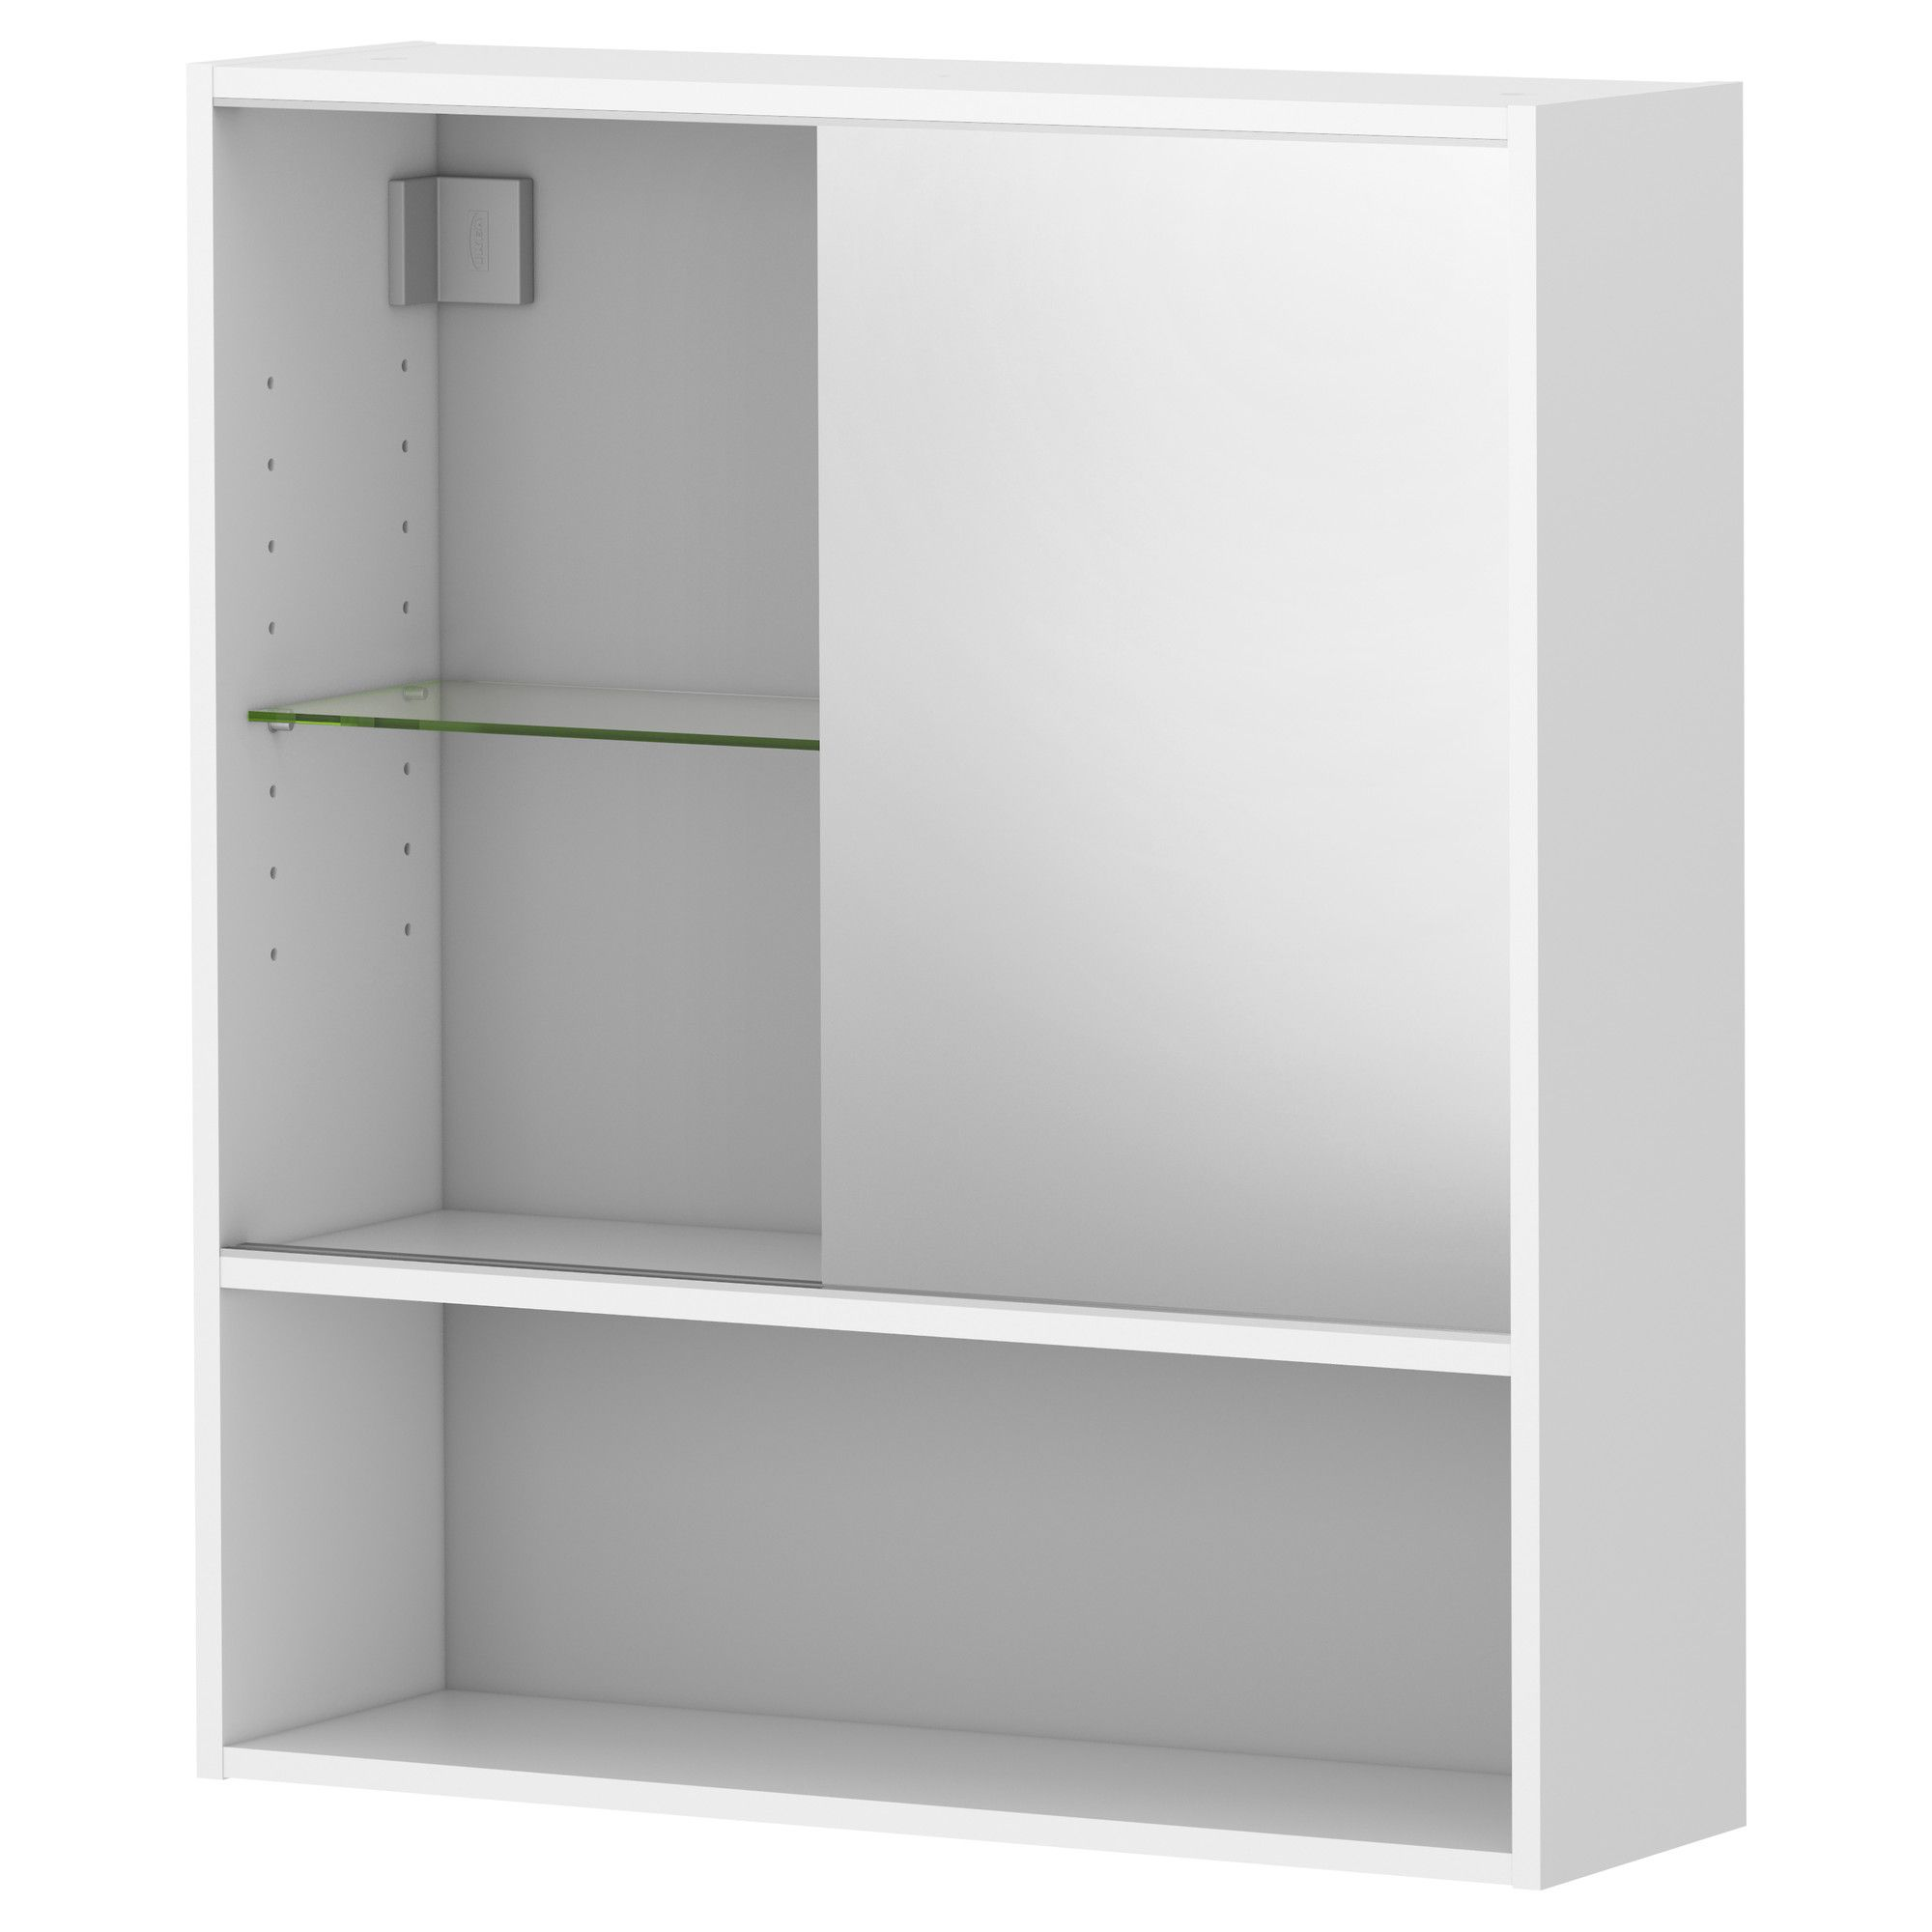 $30 - We could do this on the cheap??? FULLEN Mirror cabinet - IKEA ...